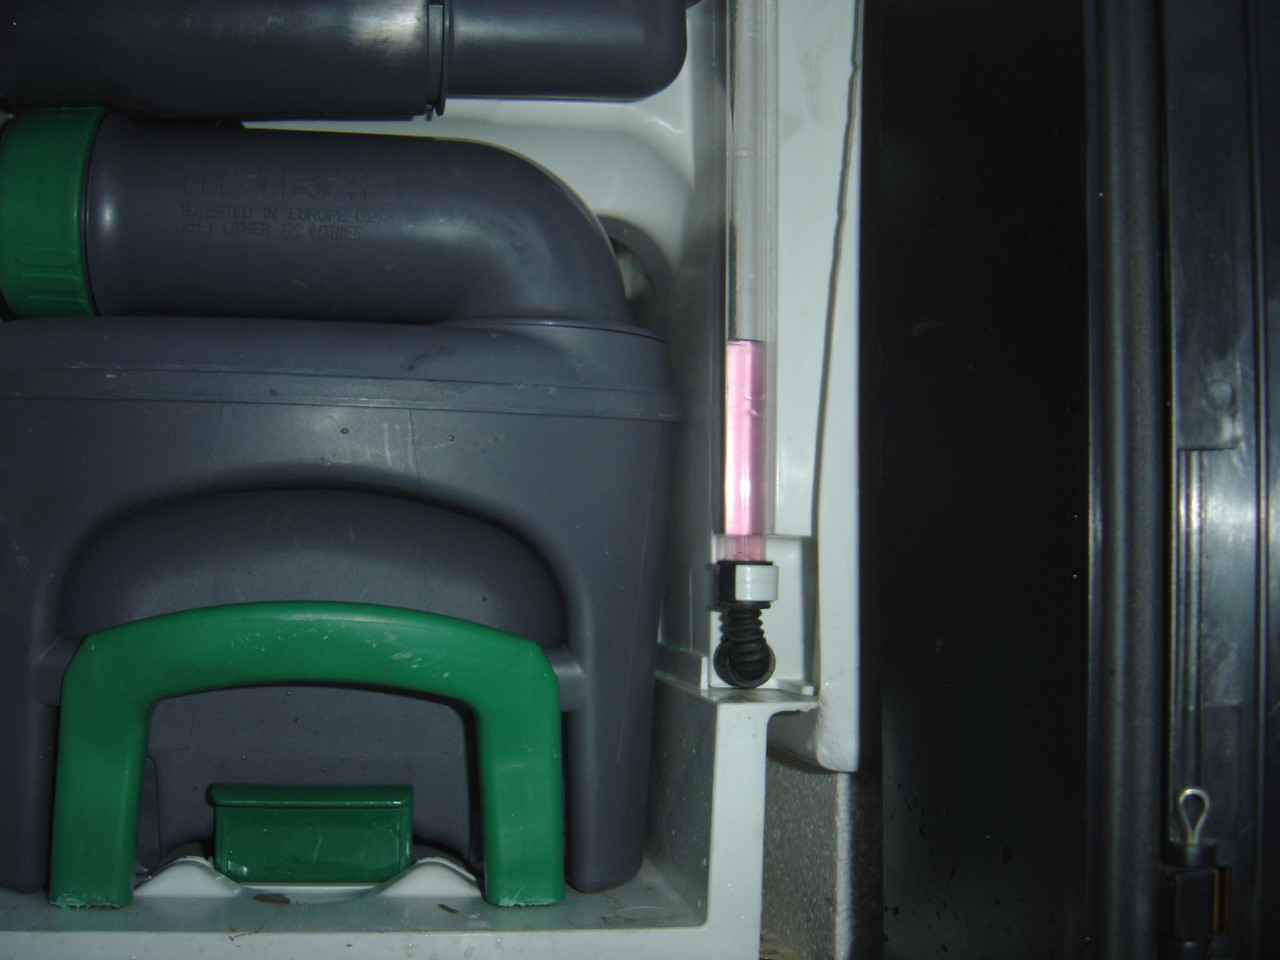 Unlock and open the cassette toilet door and locate the clear plastic sight tube for your freshwater supply to the toilet (seen on the right). As shown here the toilet fresh water tank should have antifreeze in it. This has to be drained out.